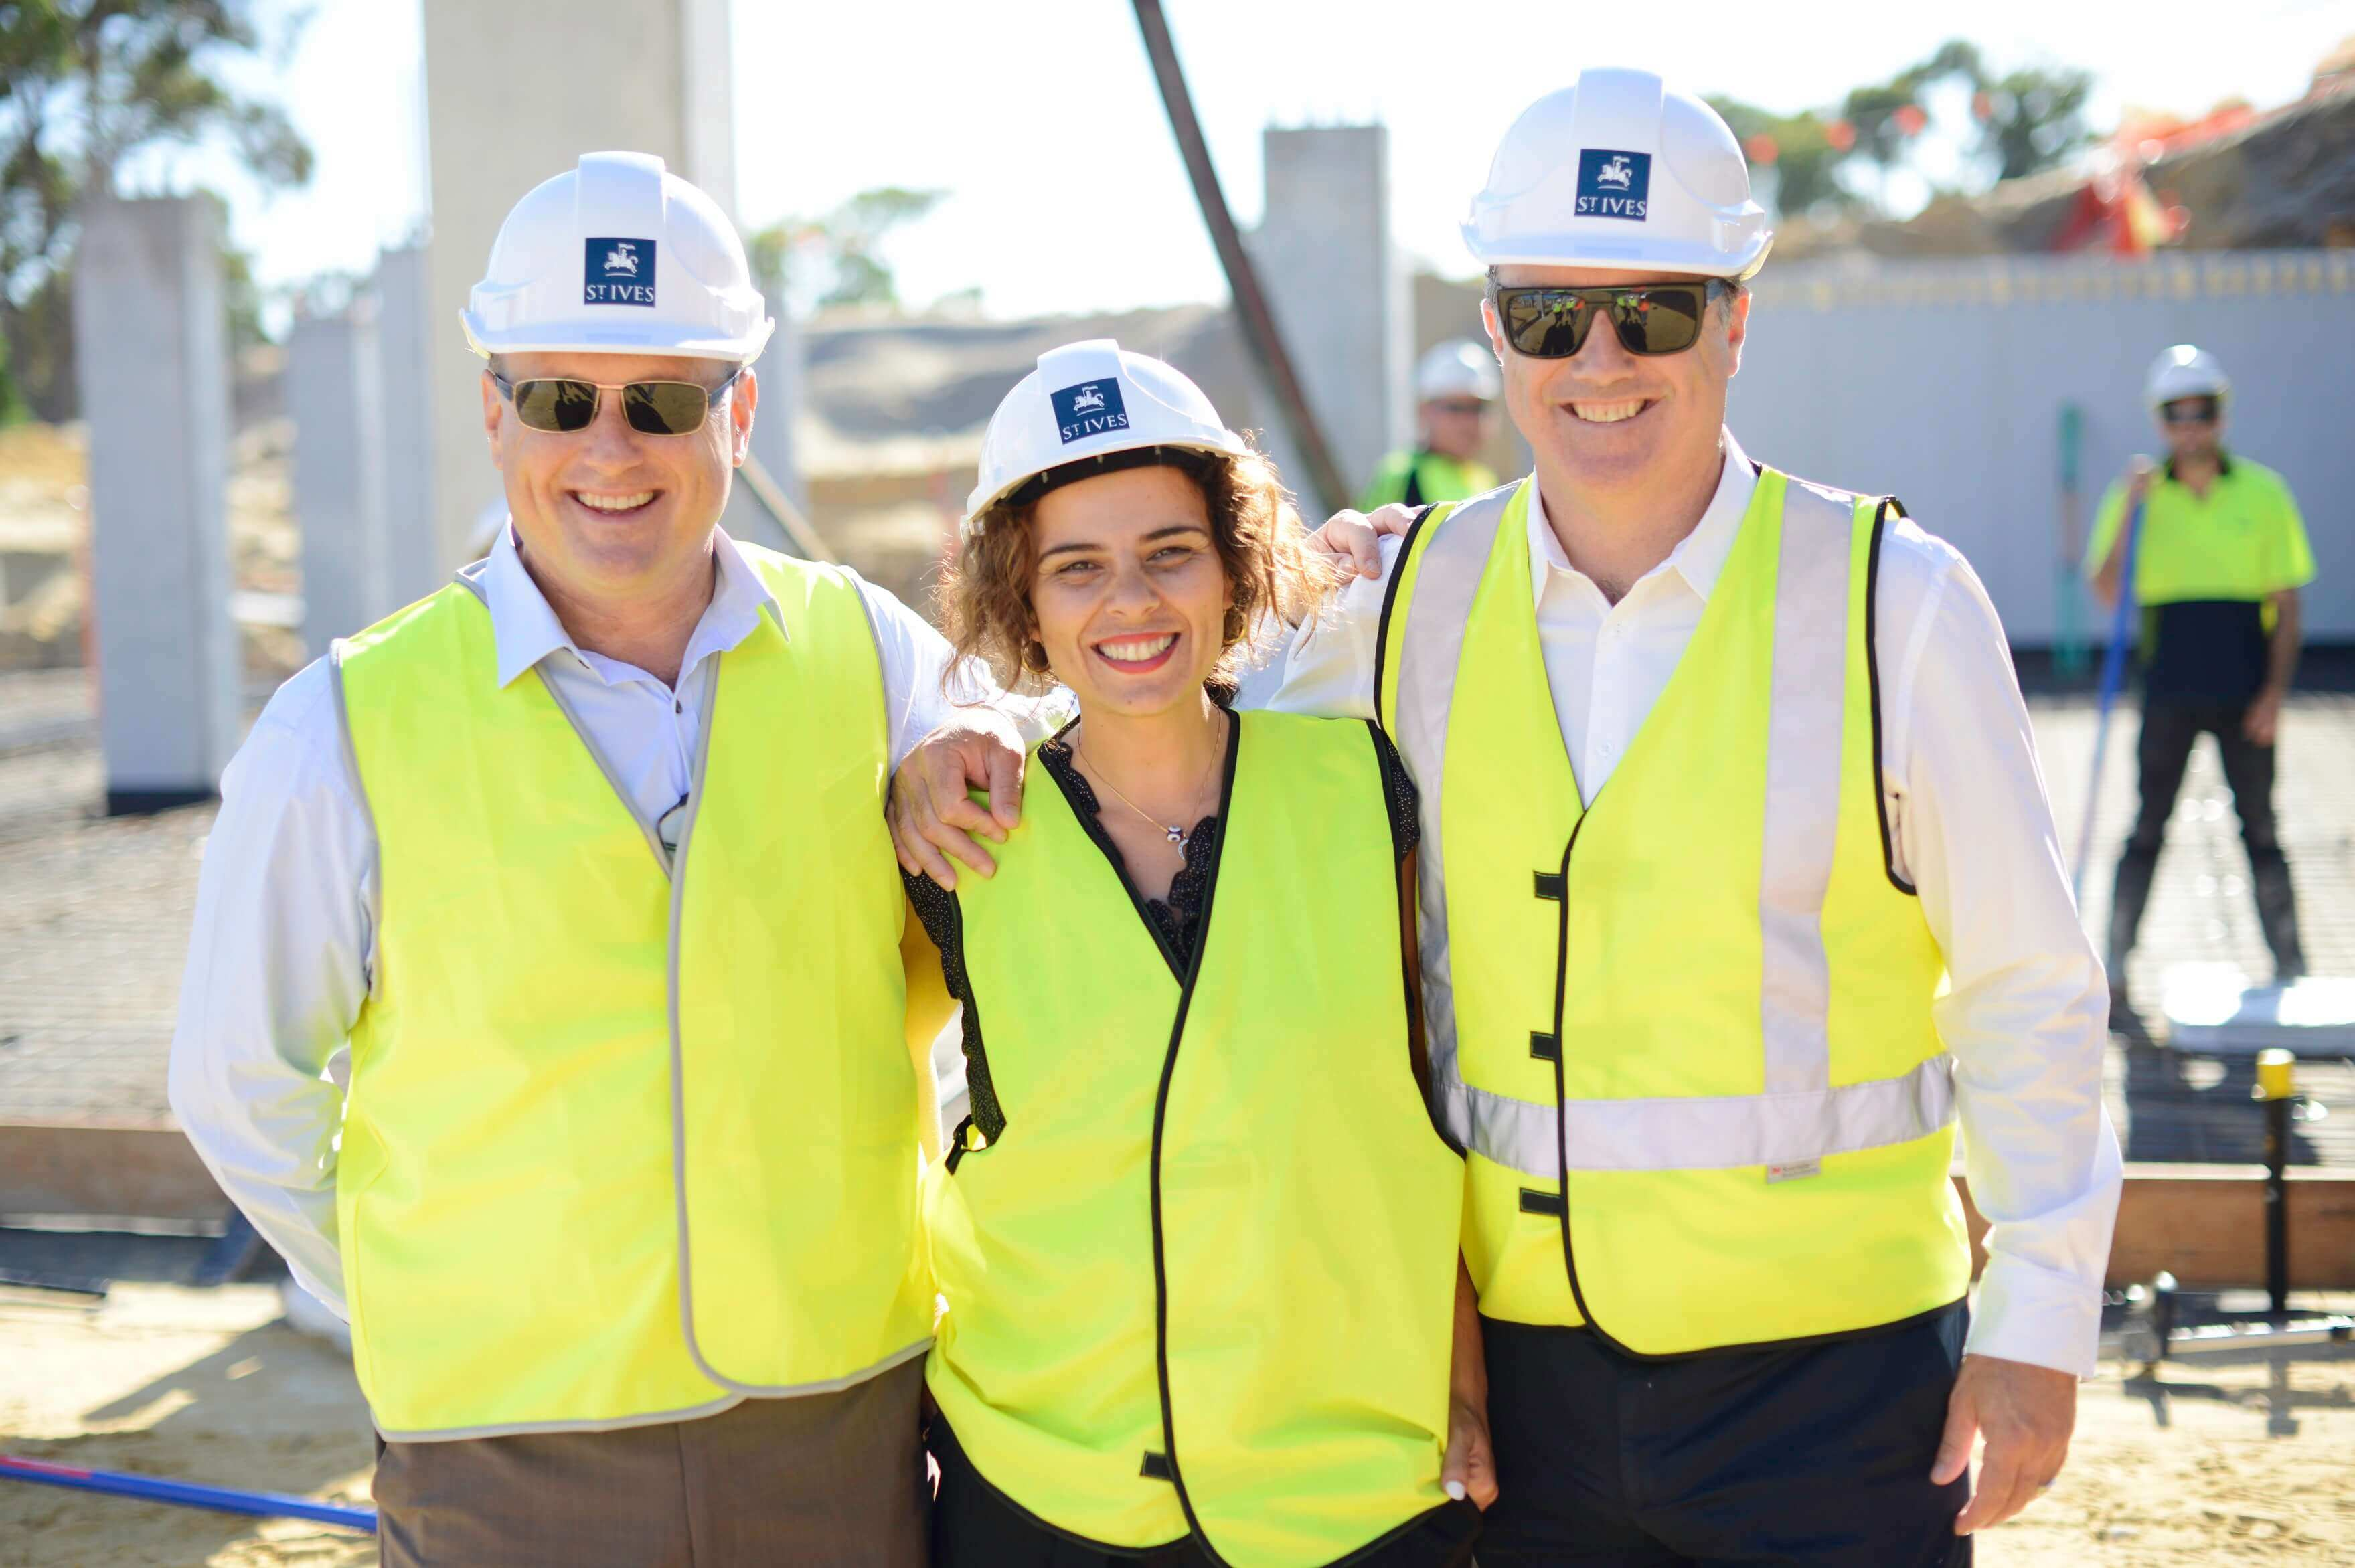 St Ives Retirement Living staff members dressed in fluorescent vests and hard hats on building site during construction of St Ives Carine village